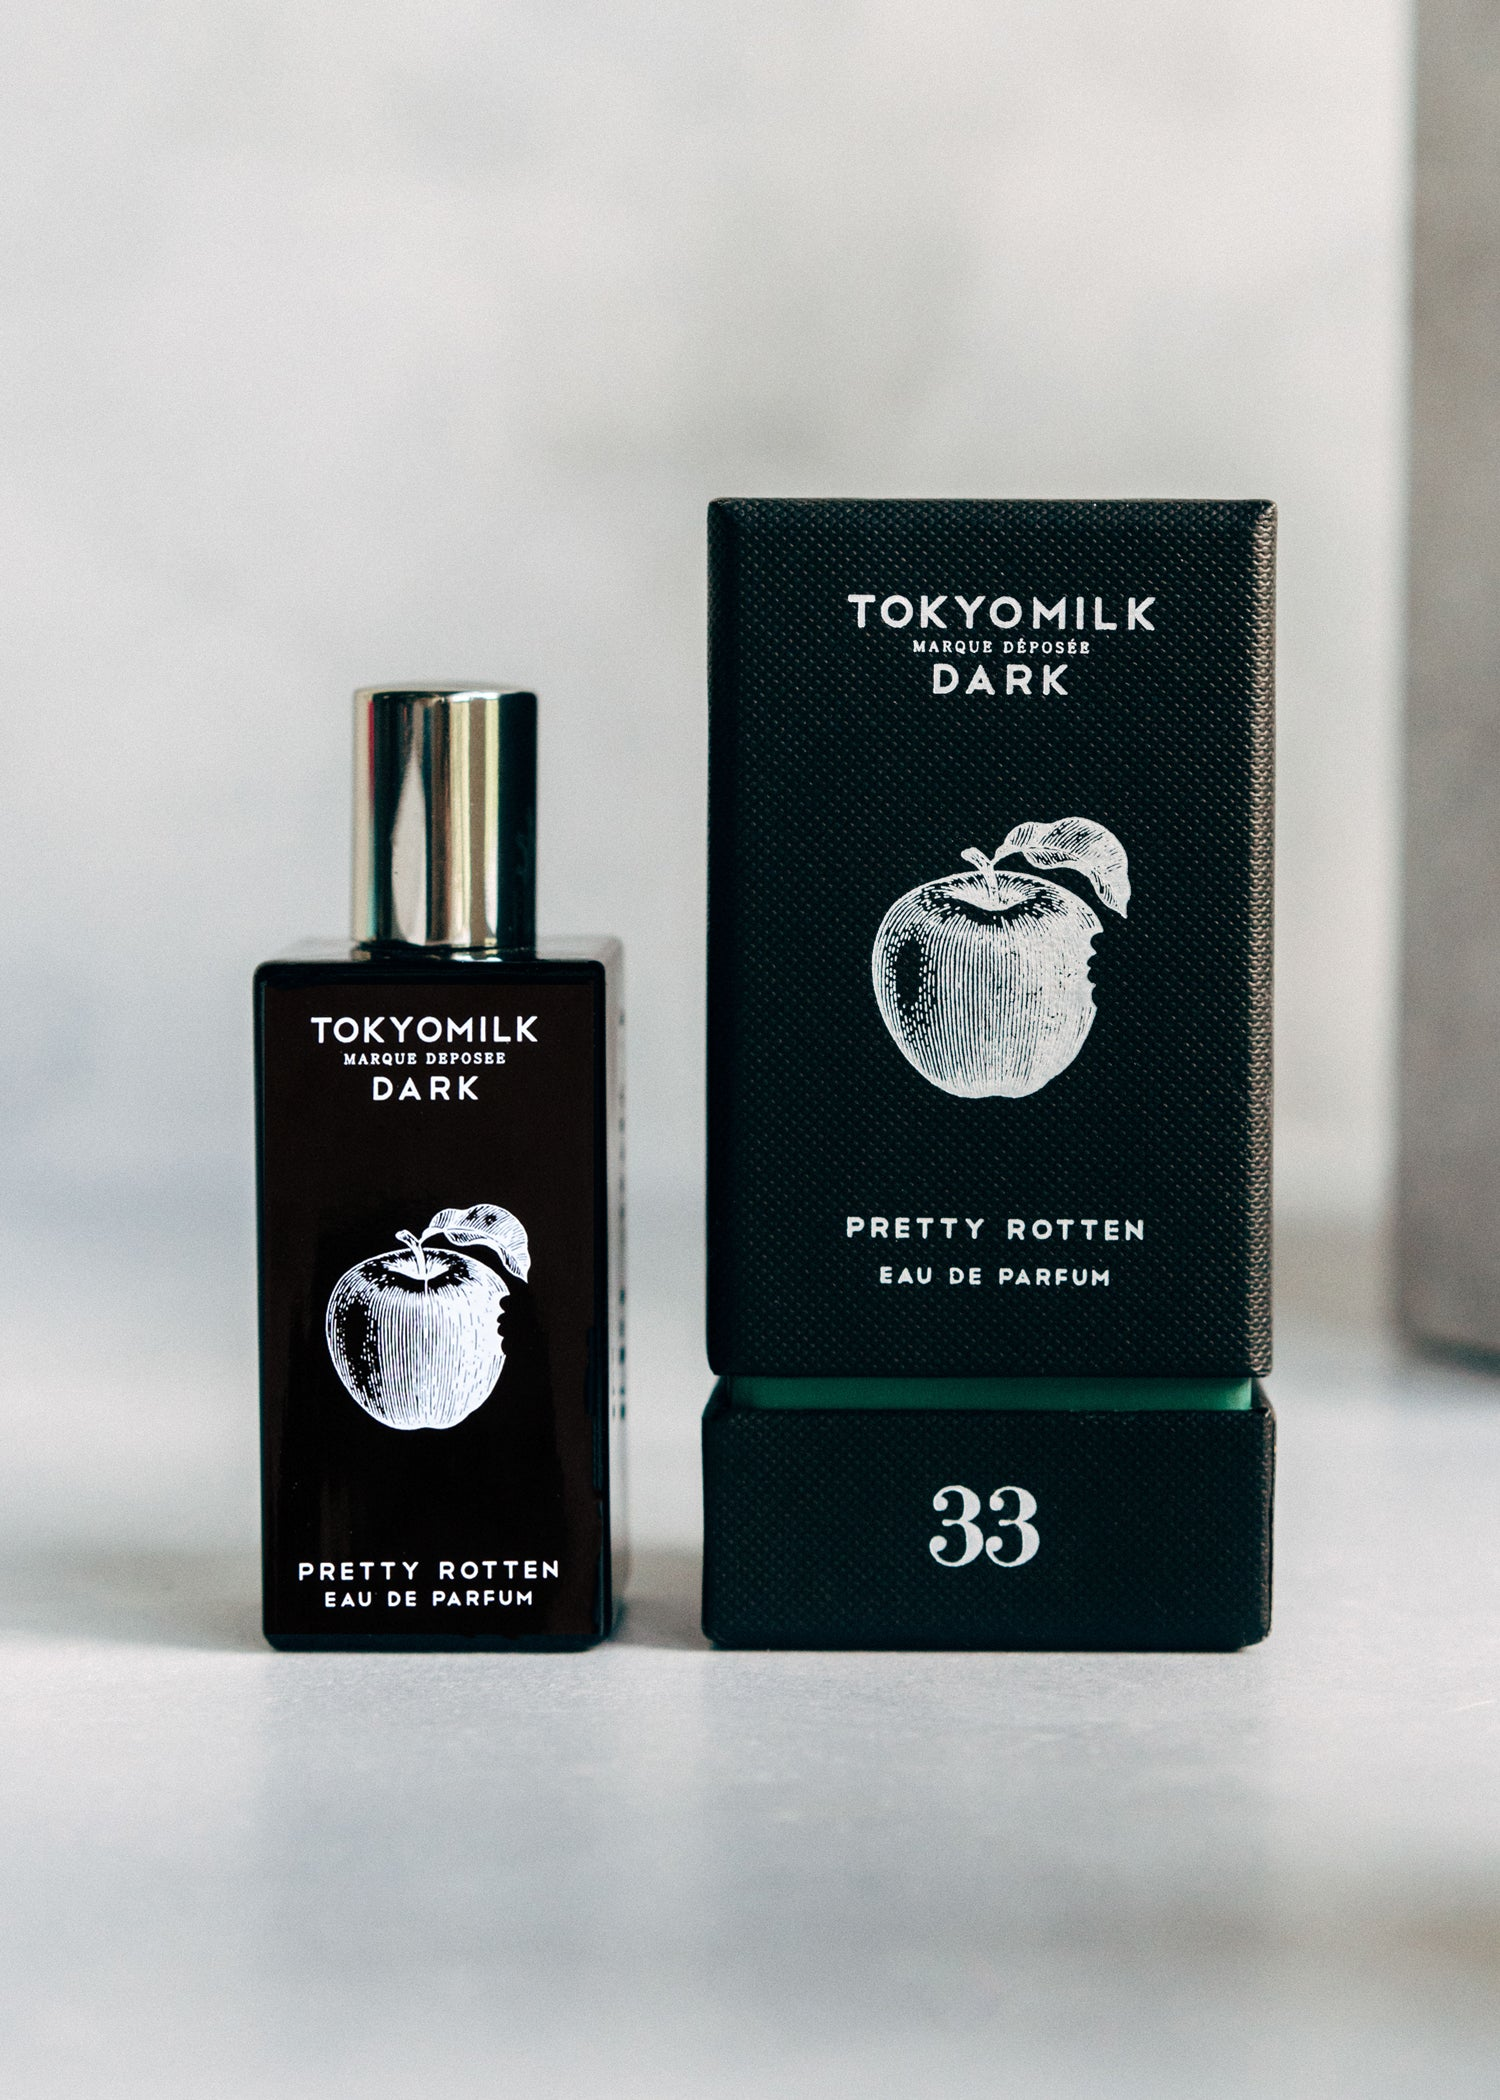 This Is the 1 Perfume Brand at Harvey Nichols (and Youve Never Heard of It)